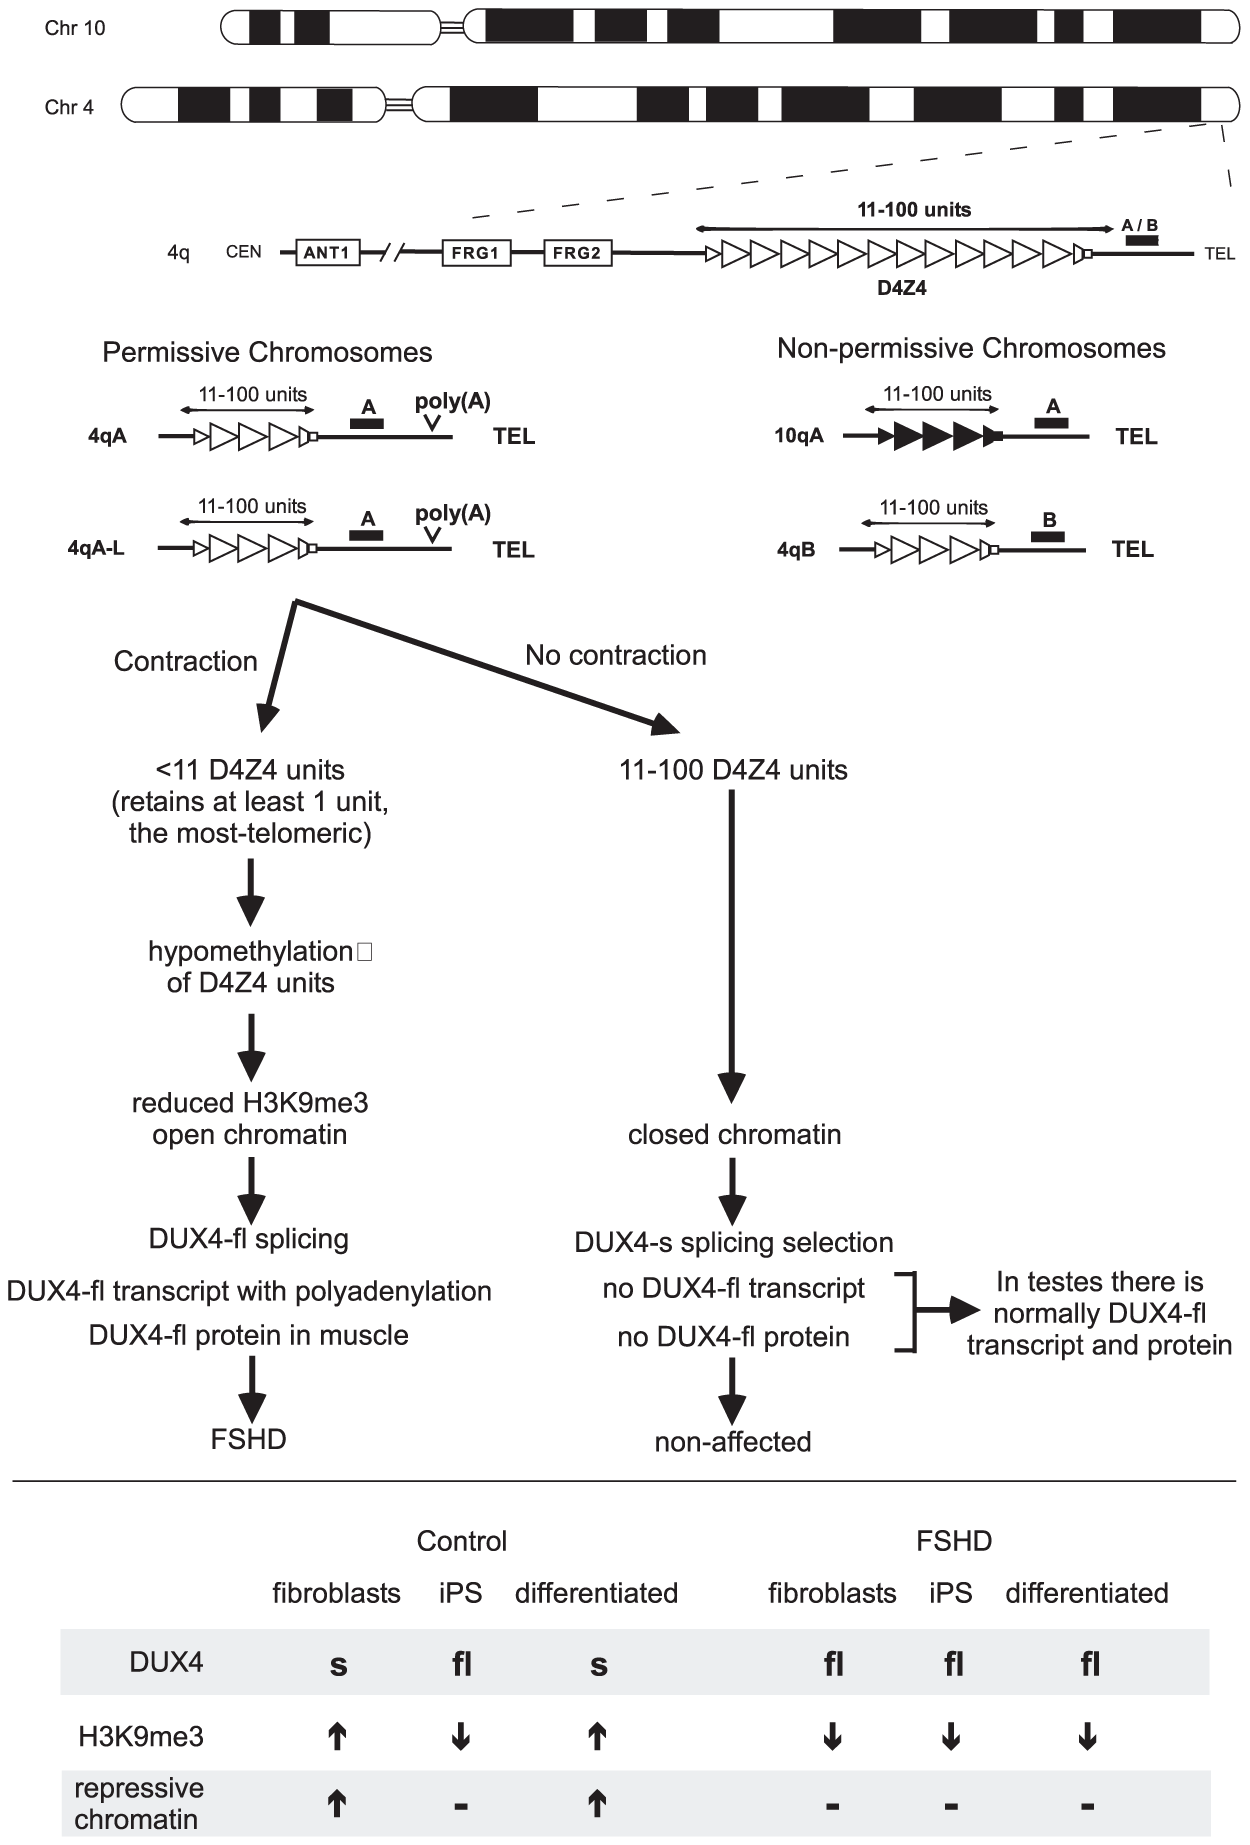 Simplified schematic outlining the genetic requirements for FSHD and the current model for pathogenesis.